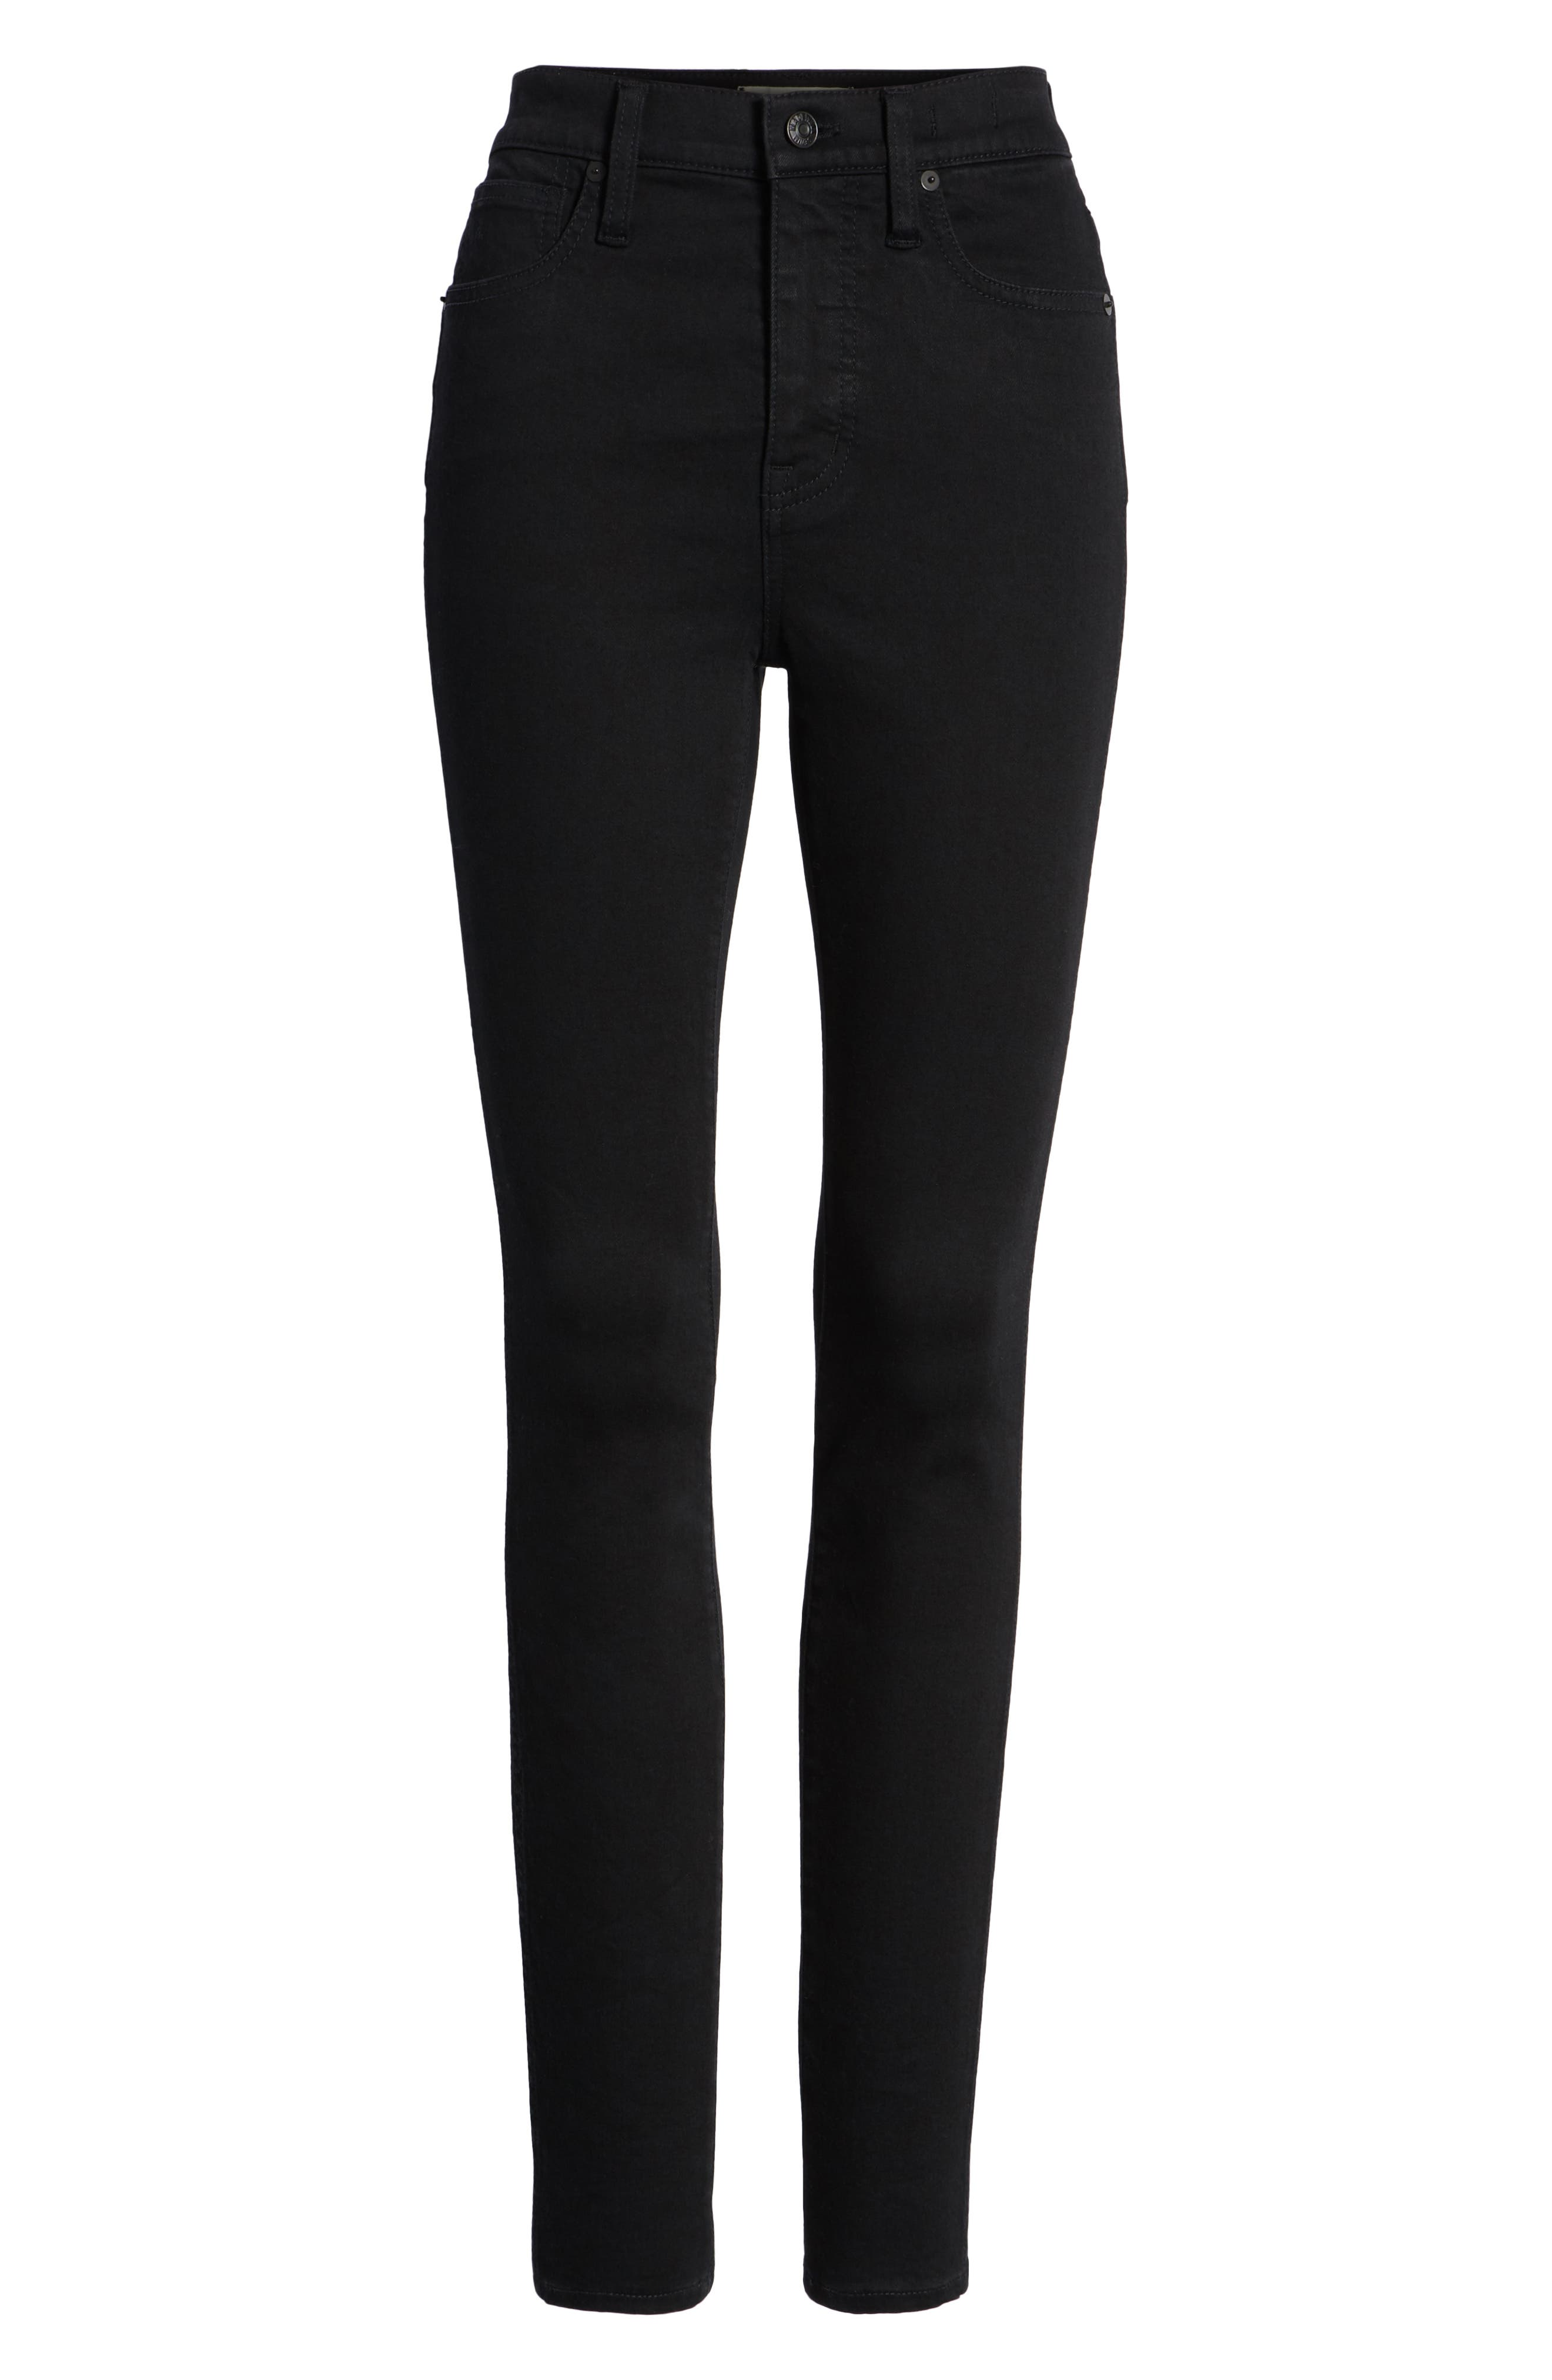 MADEWELL, 10-Inch High Waist Skinny Jeans, Alternate thumbnail 7, color, 001